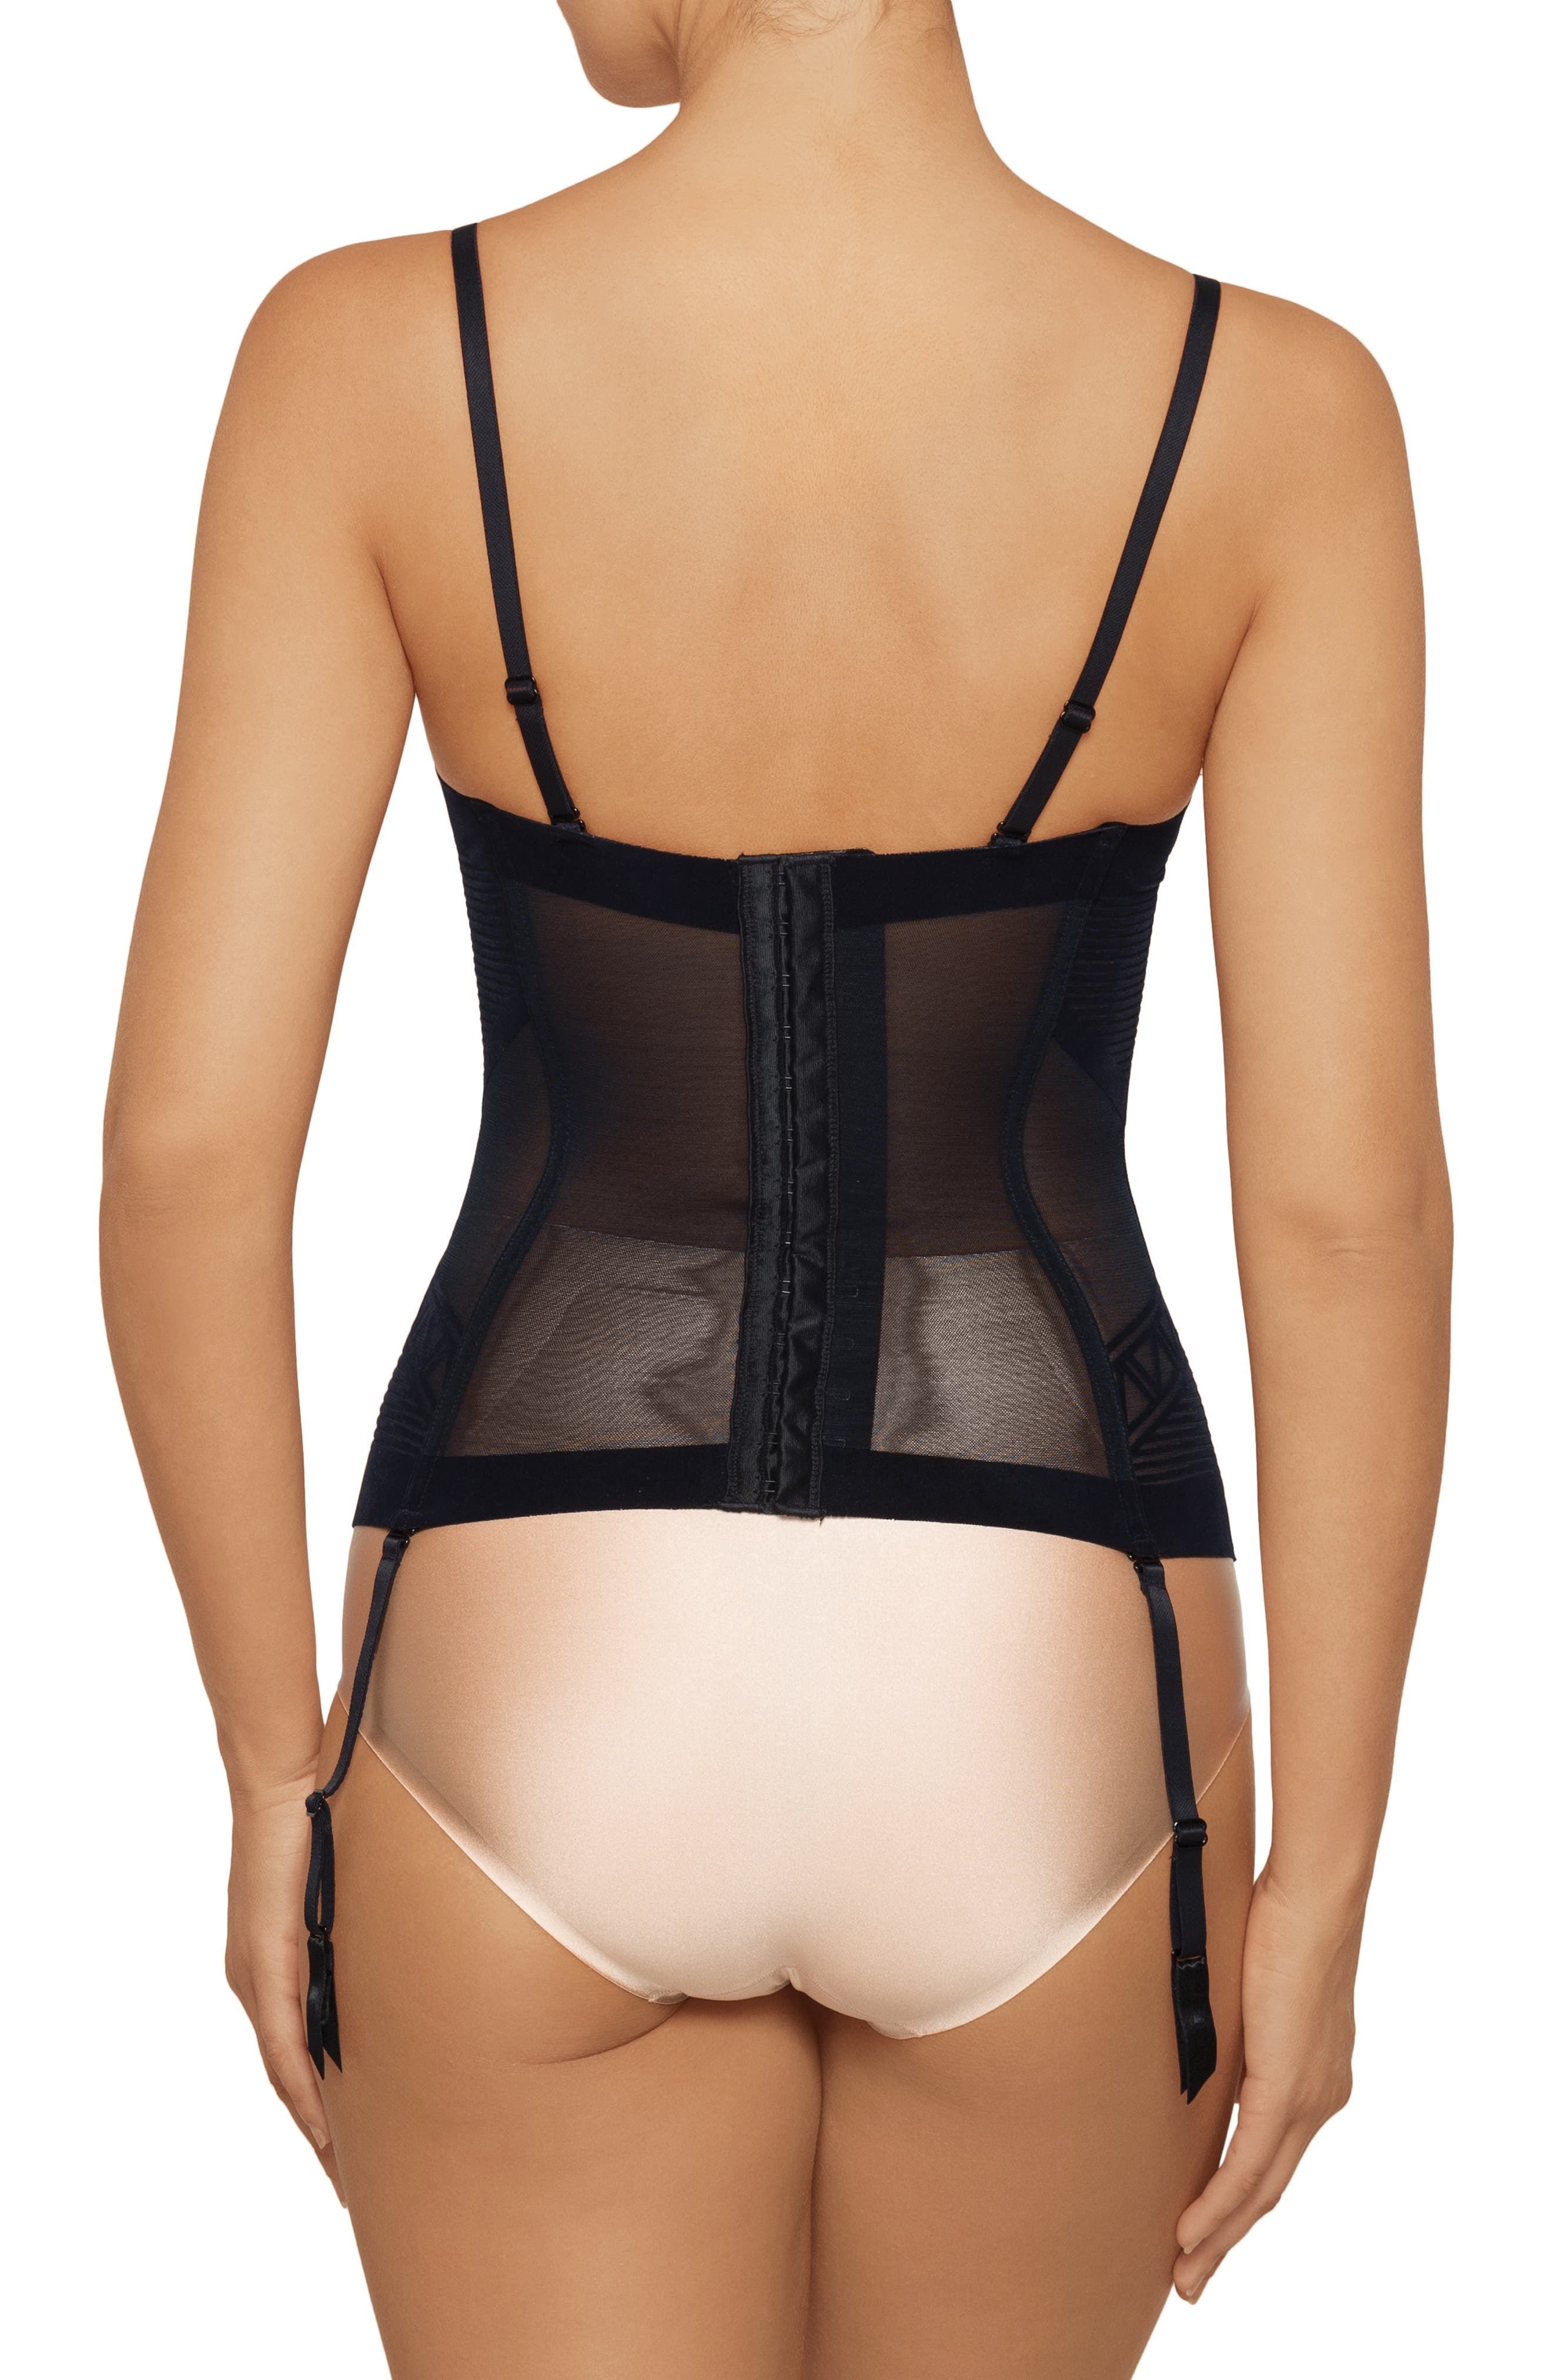 NANCY GANZ,                             Enchanté Convertible Strapless Corset,                             Alternate thumbnail 2, color,                             001